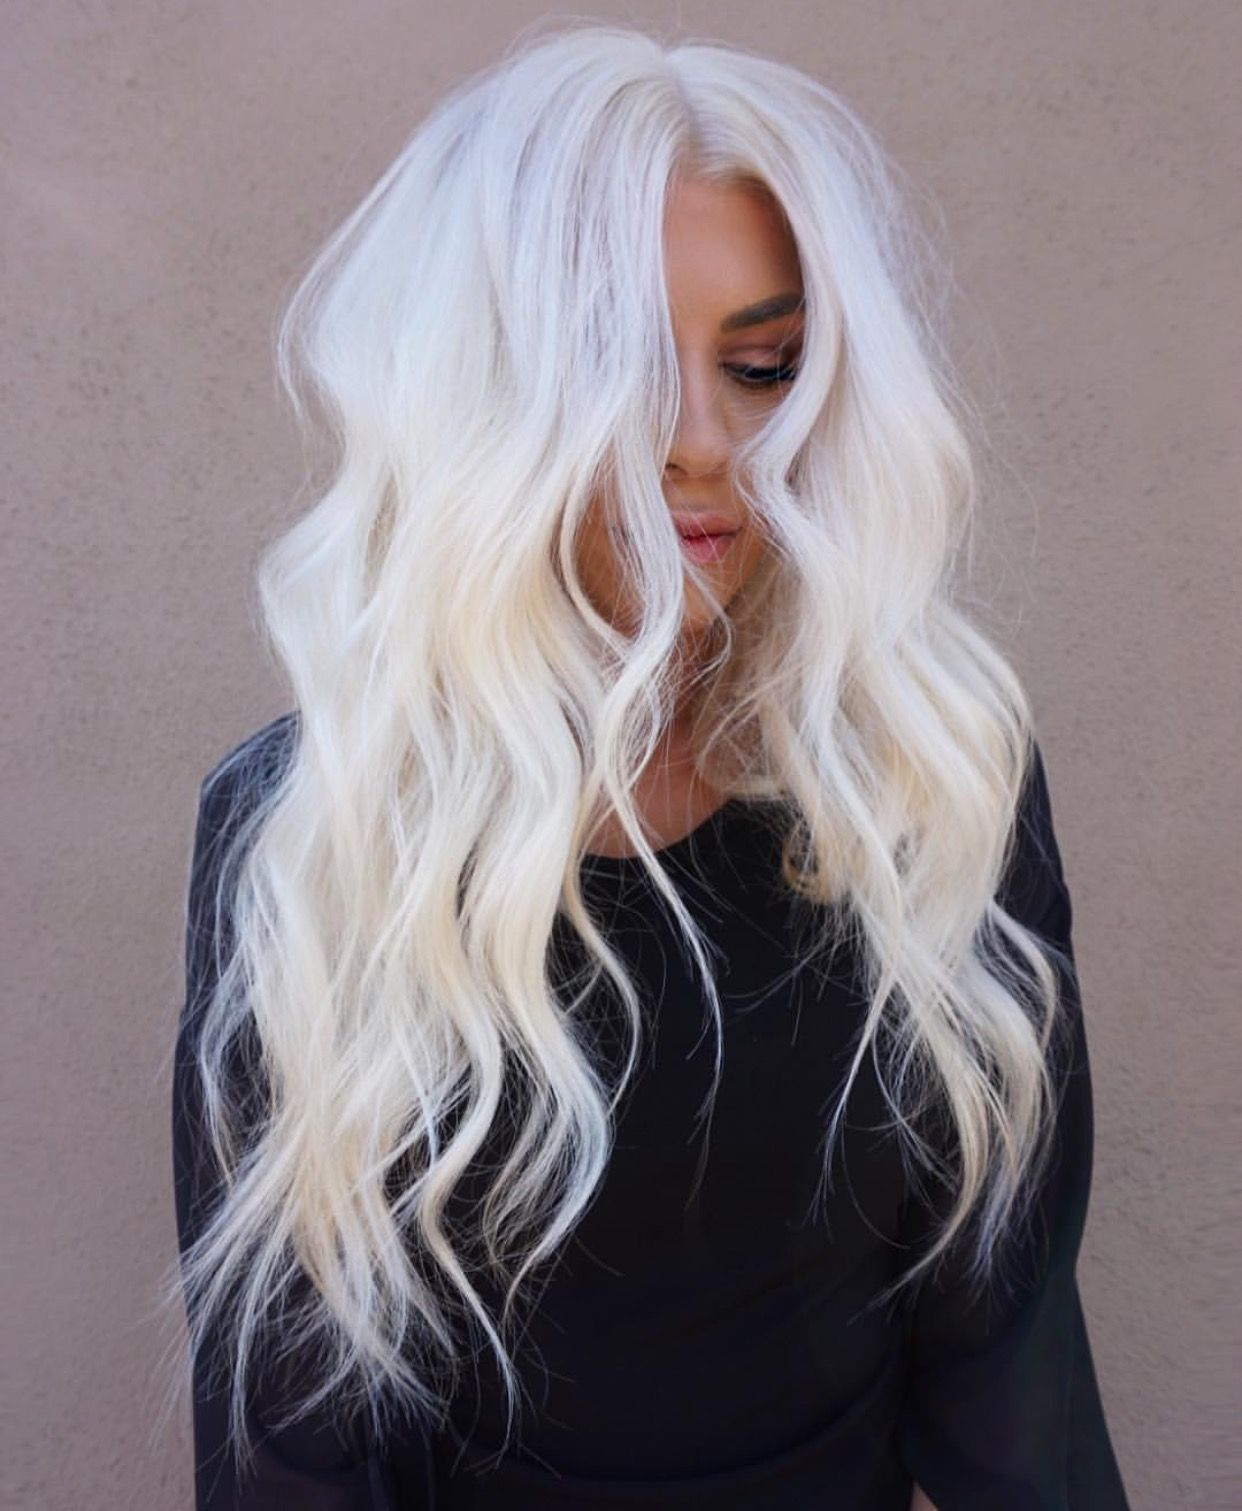 Draw His Attention with Your Platinum Blonde Hair Draw His Attention with Your Platinum Blonde Hair new photo